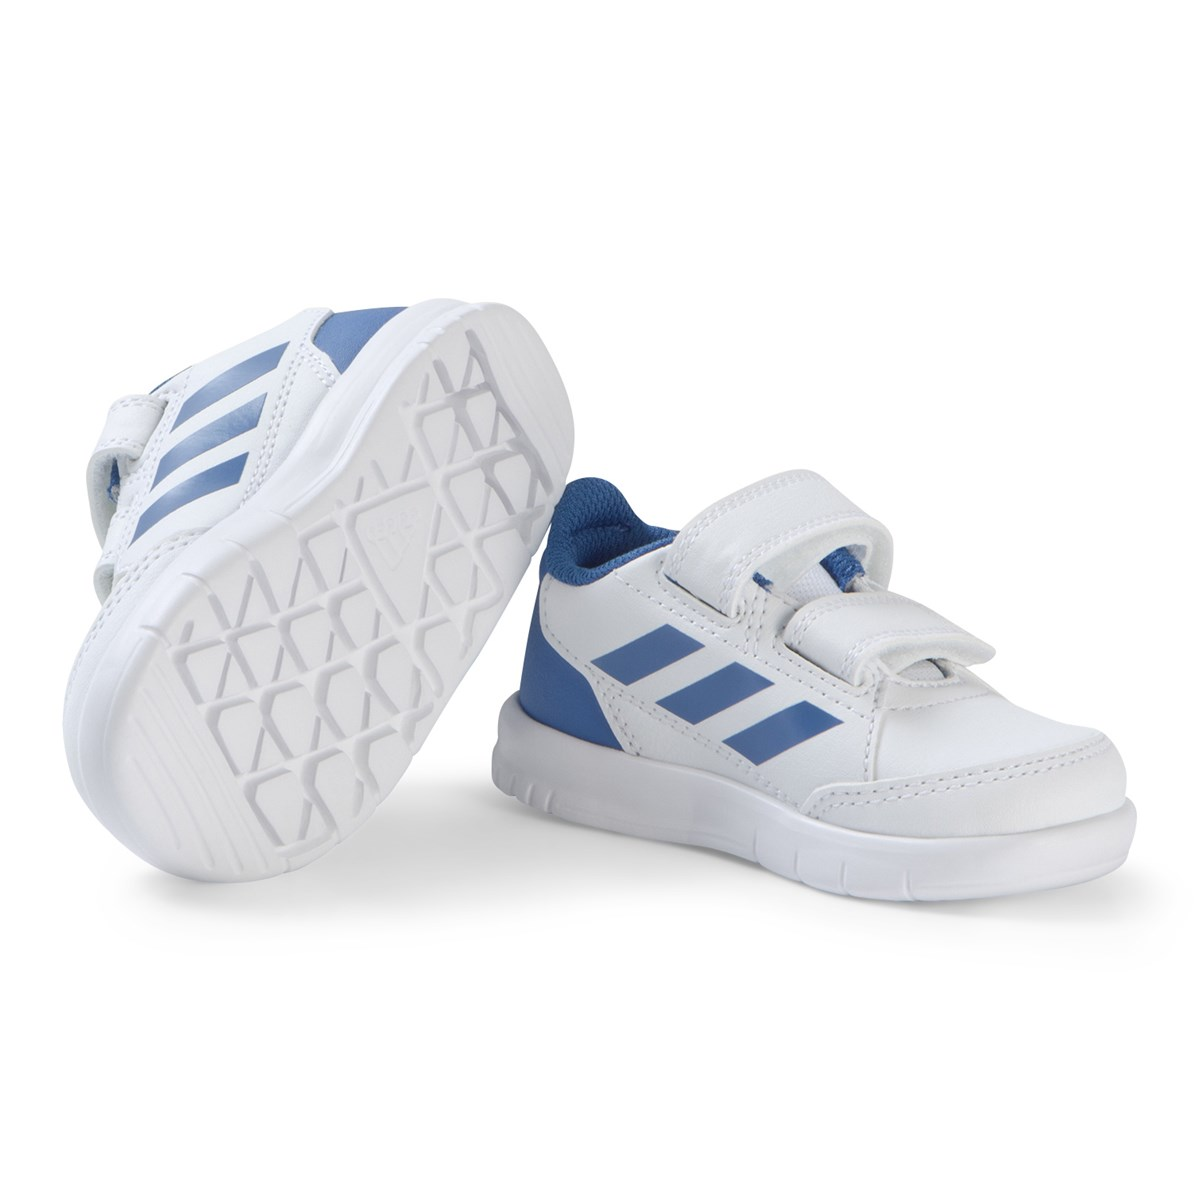 adidas Performance White and Blue AltaSport Velcro Infants Sneakers